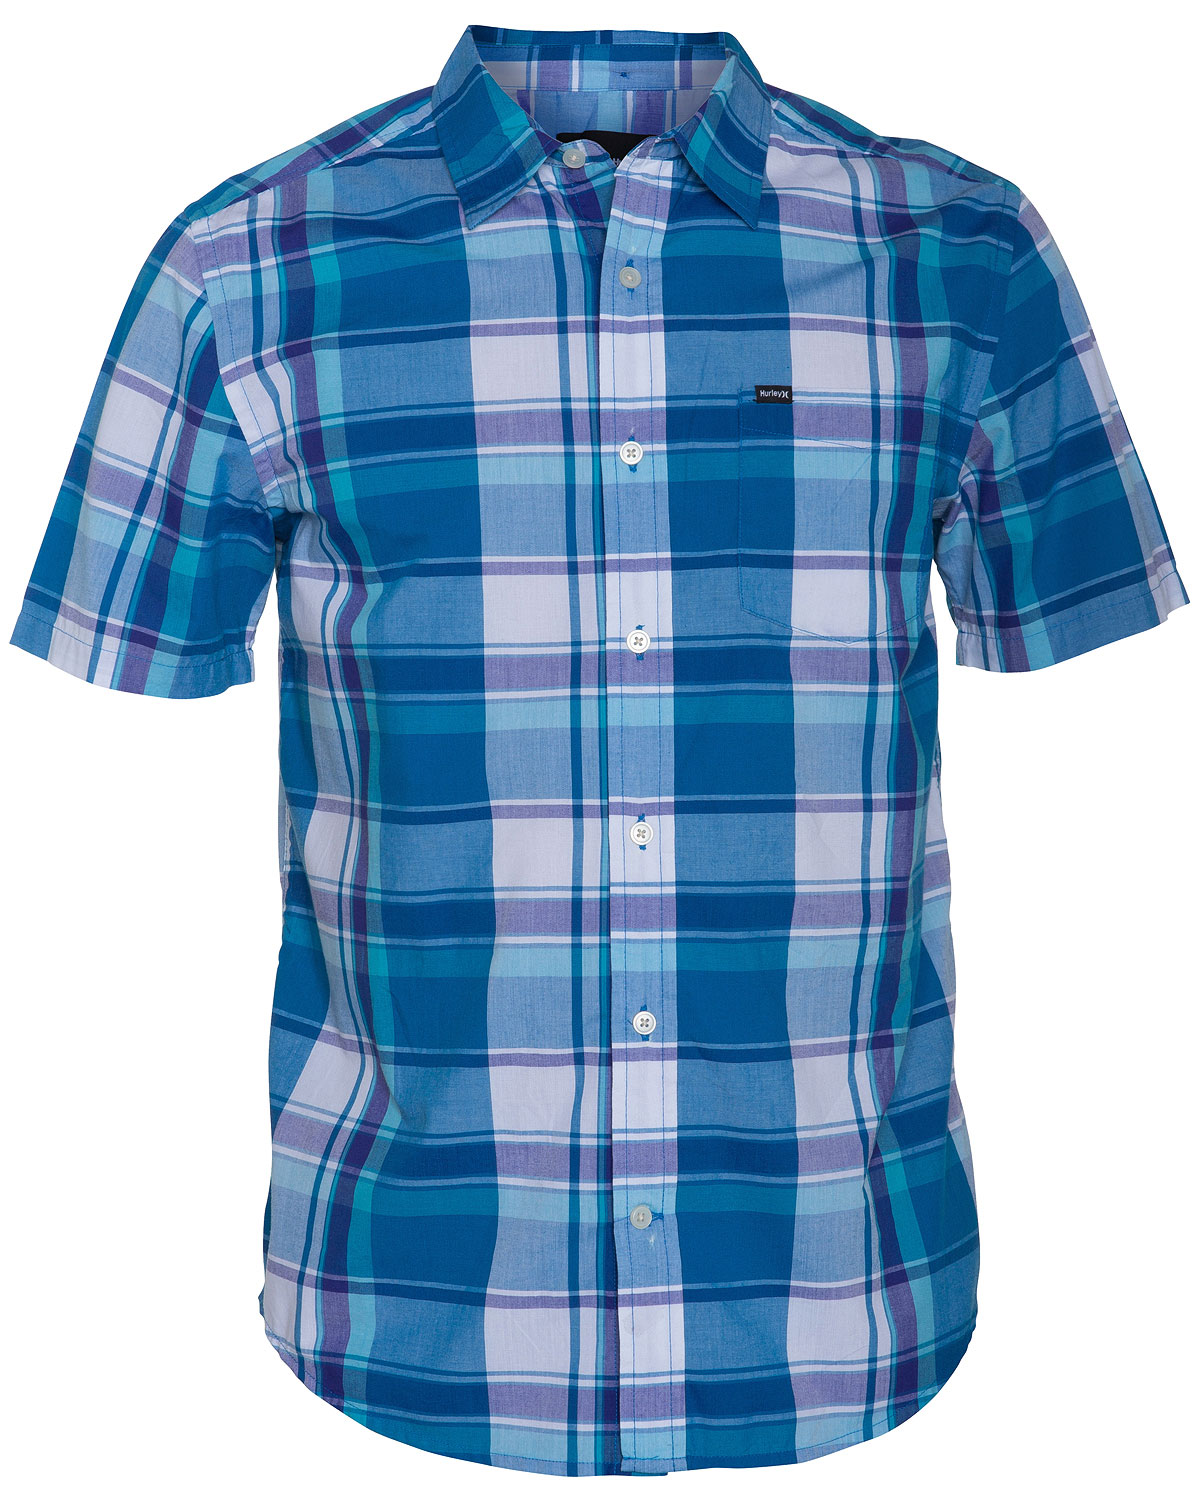 Surf Key Features of the Hurley Copter Shirt: Regular fit 60% cotton/40% polyester Midscale tonal yarn-dye plaid whiteground Single chest pocket Pearl button closure Colorbar button at back collar - $28.95